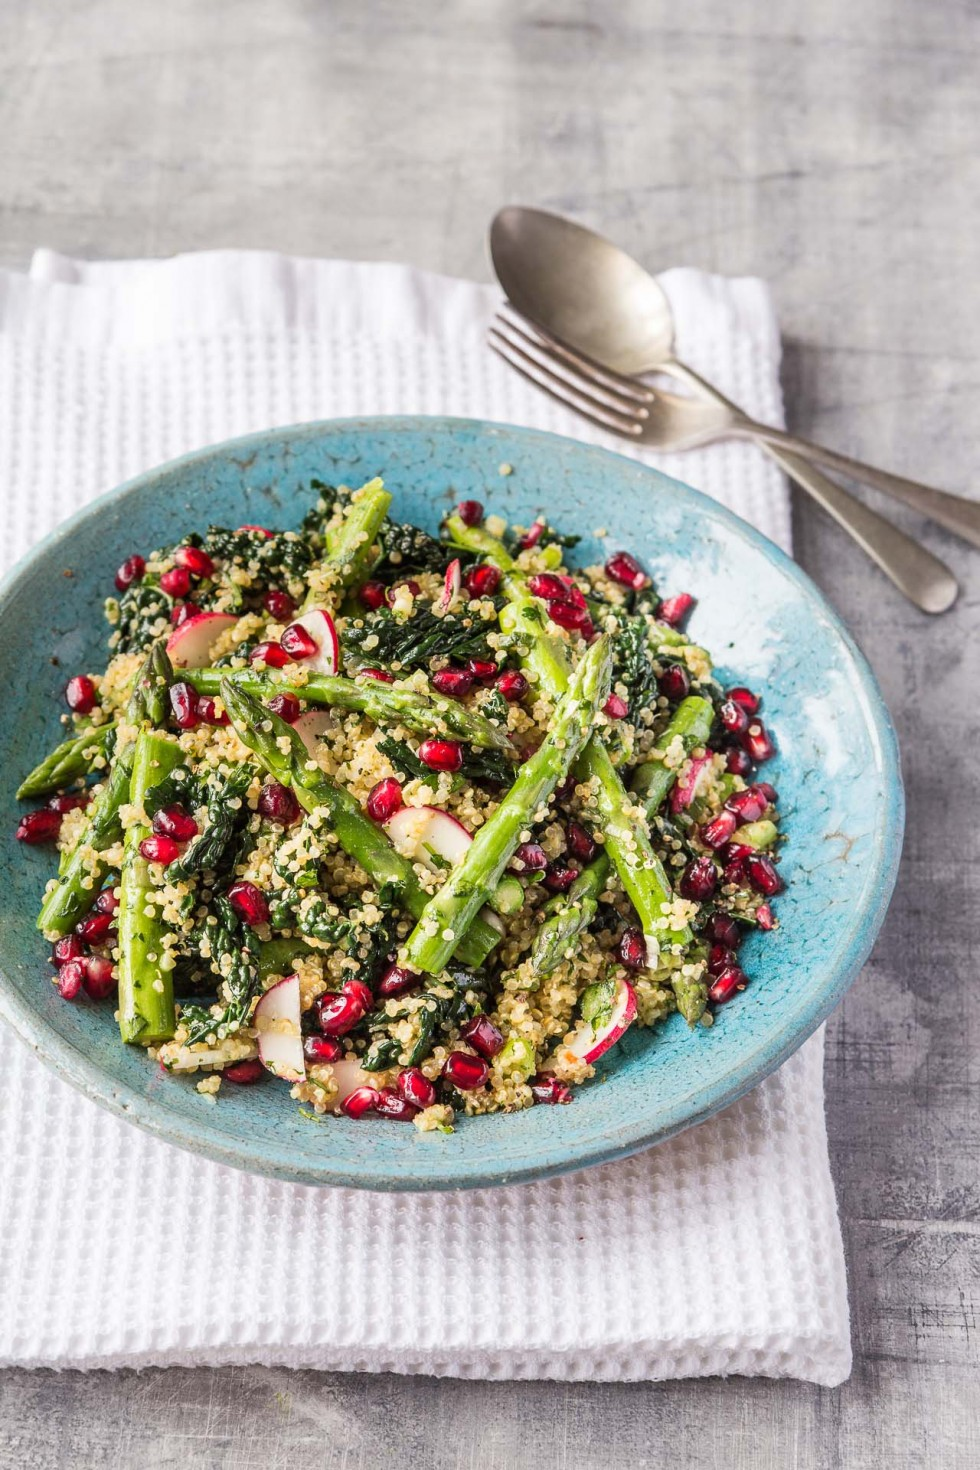 Quinoa 'tabbouleh' with asparagus, kale, pomegranate and fresh herbs